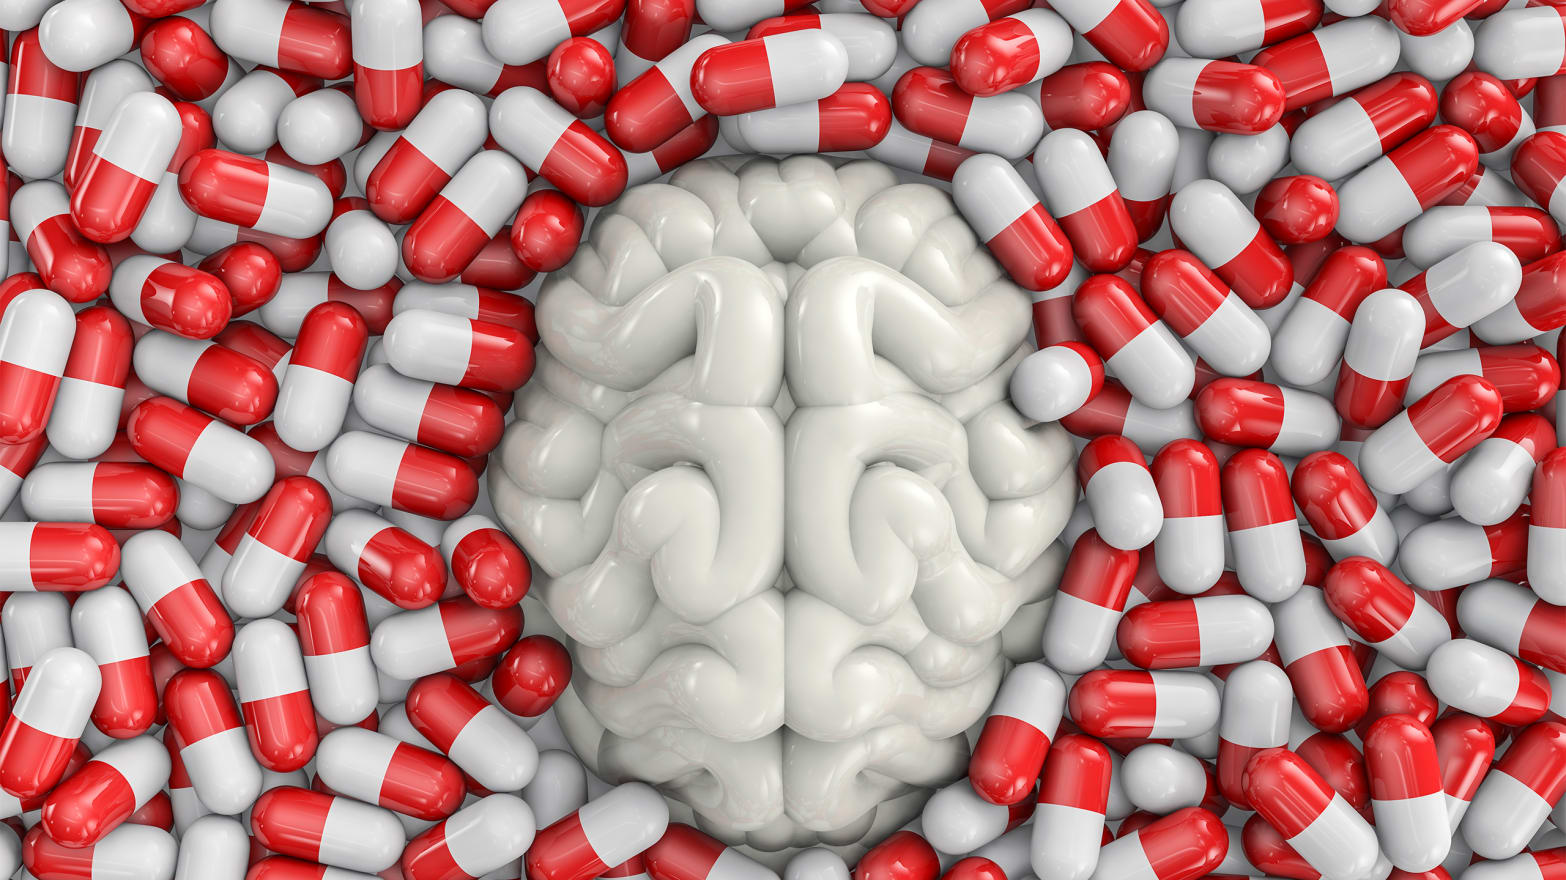 Can Adderall Abuse Trigger Temporary Schizophrenia?